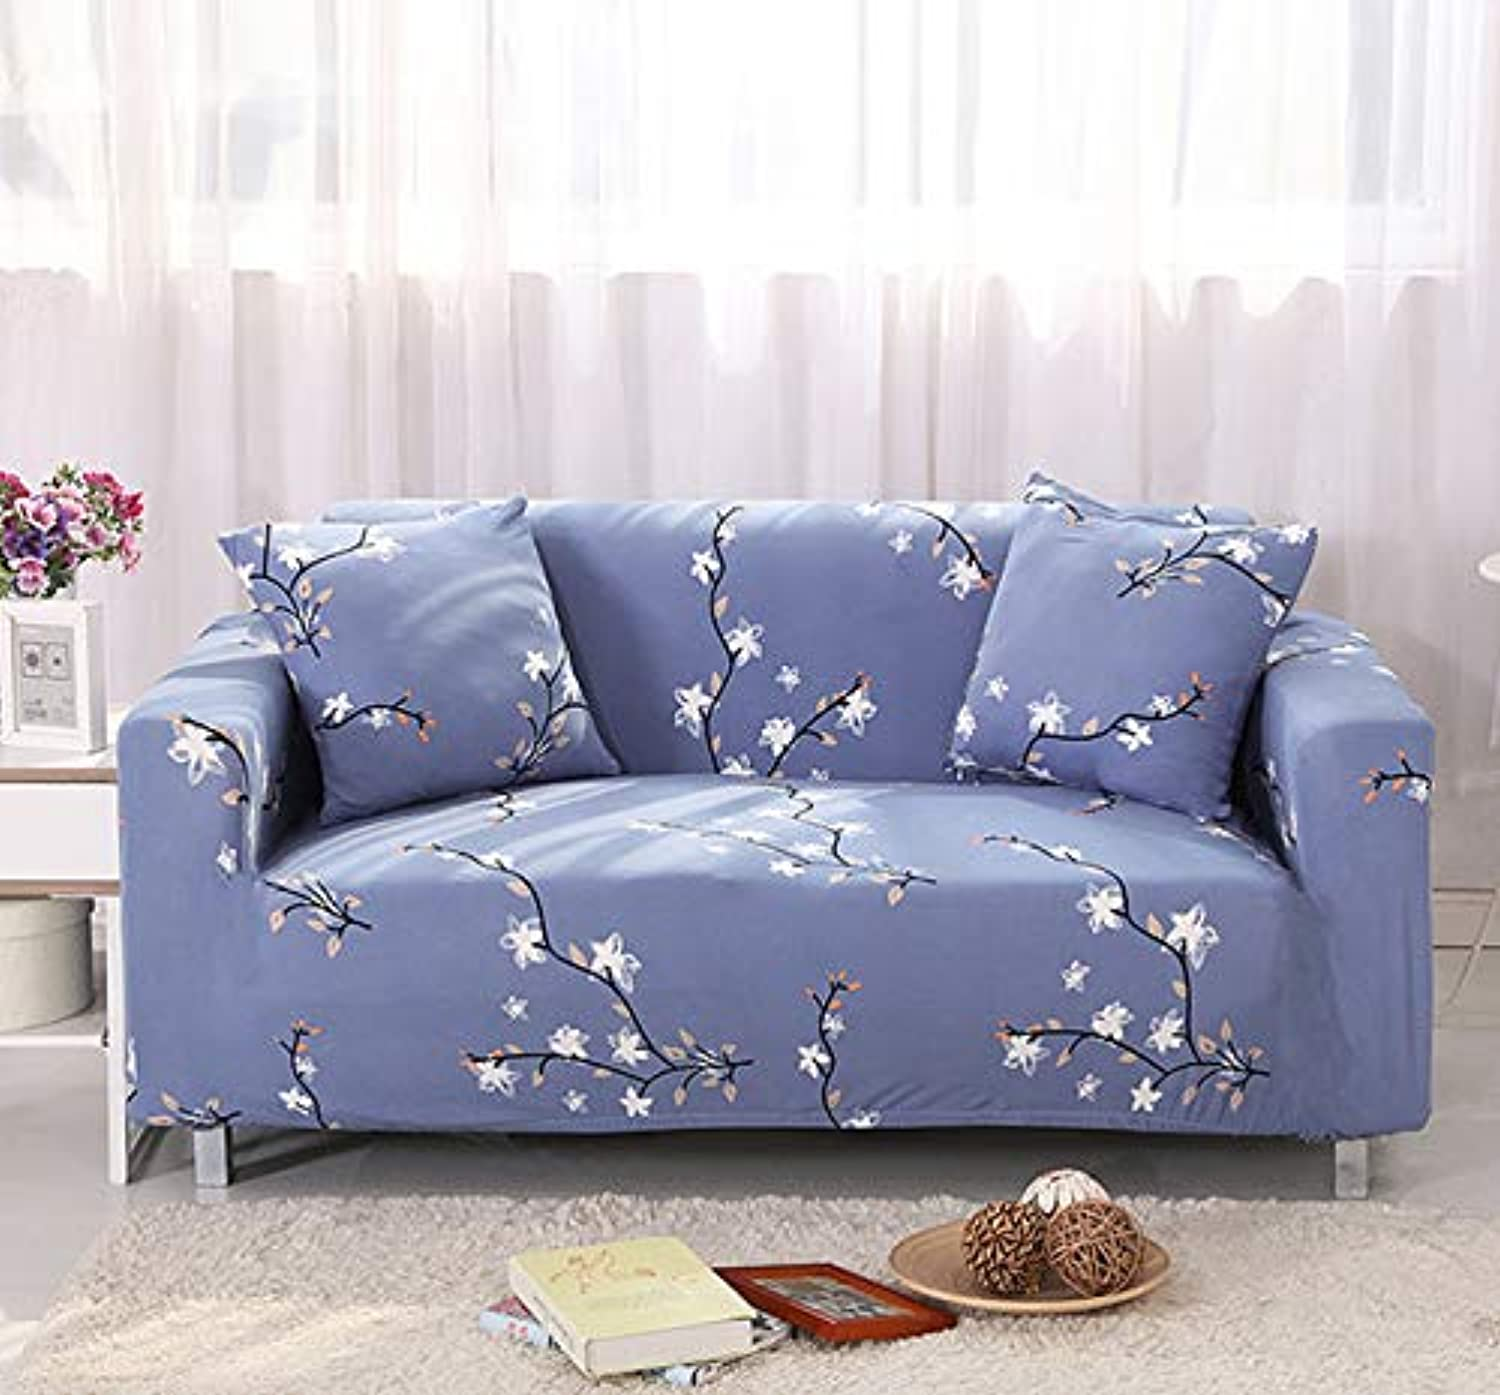 High Quality Couch Cover Sofa Covers for Living Room Lobby Soft Sofa Cover Elastic Universal Seats Cover cubierta para Sofa   QiLiXiang, Single Seater